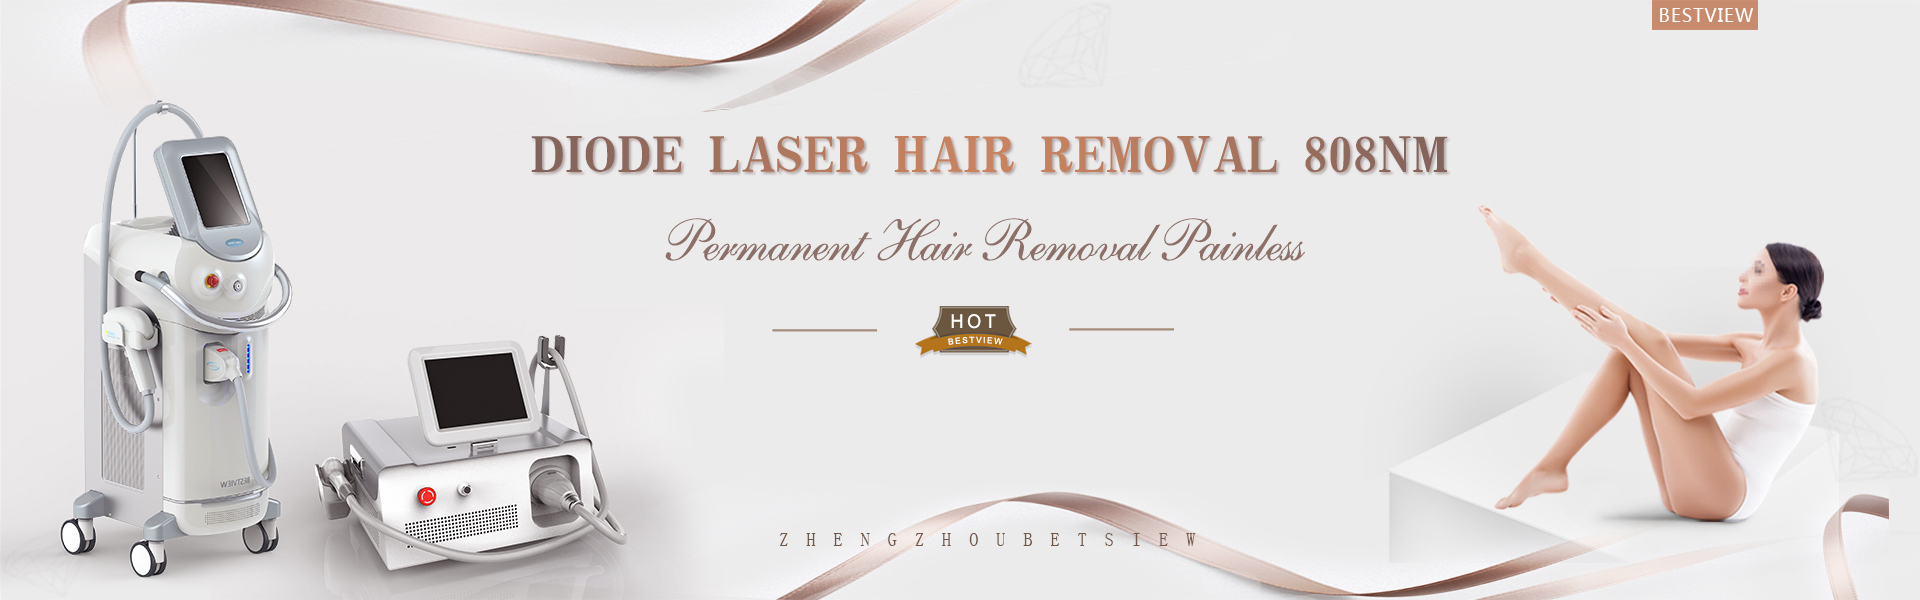 diode laser hair removal, 808nm diode laser